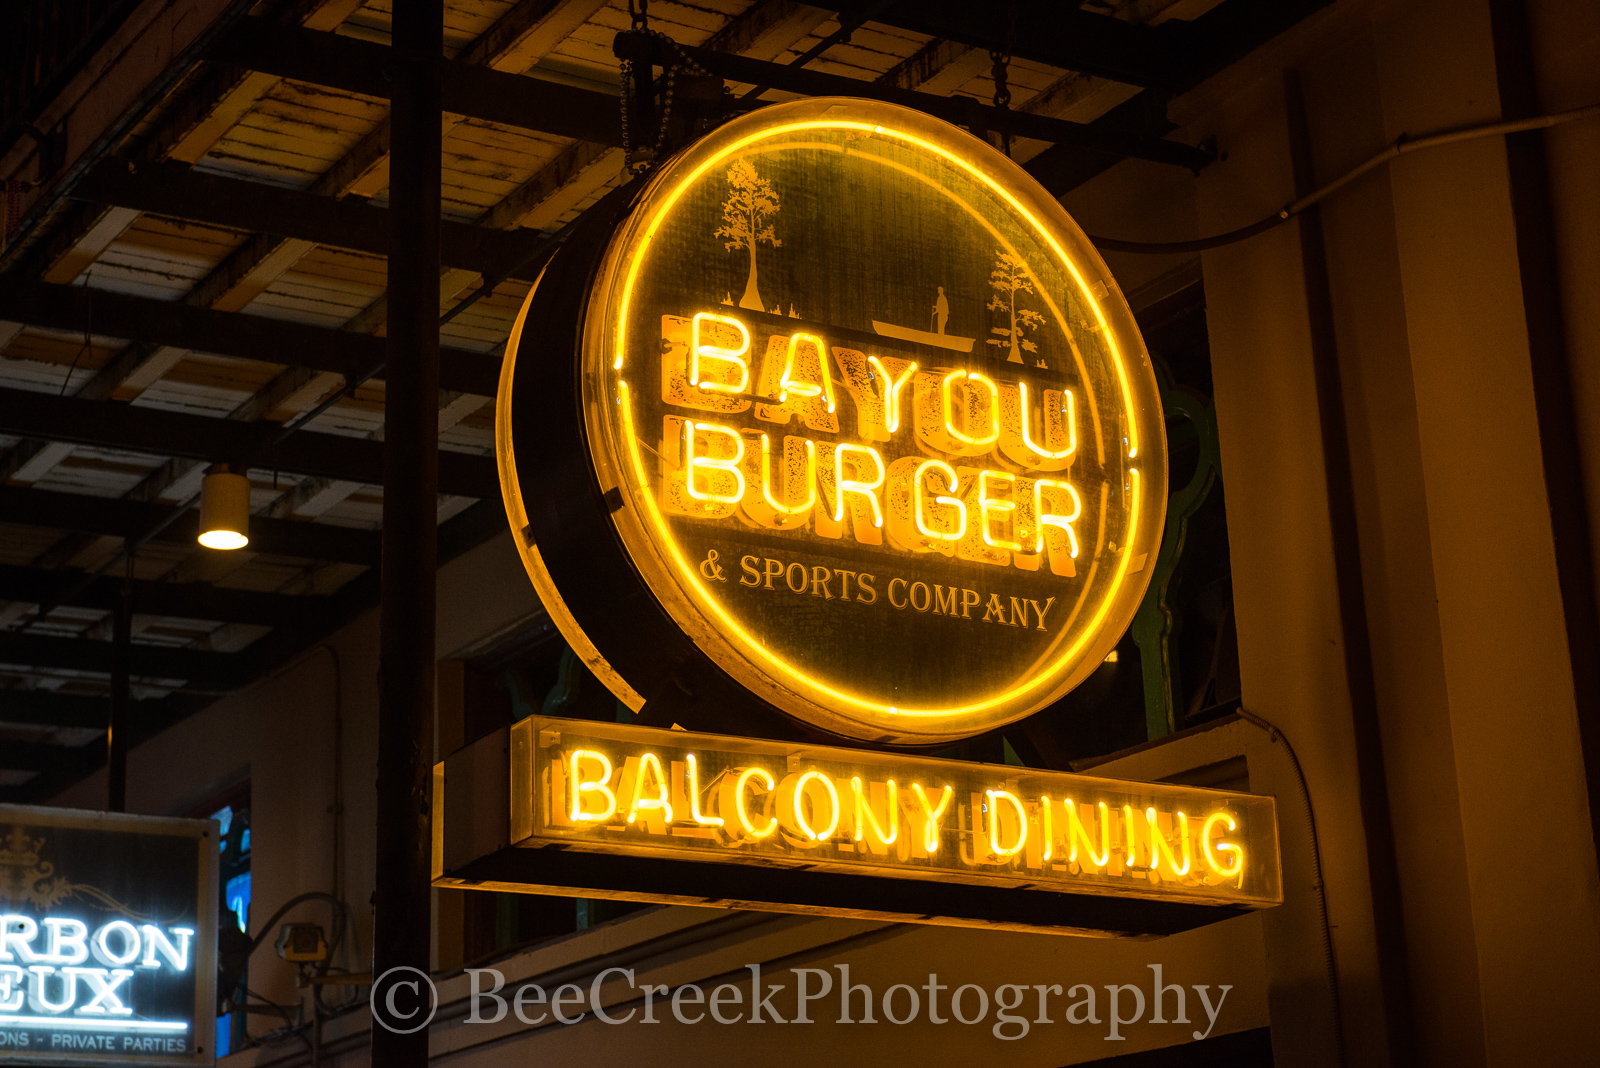 Bourbon Street, French Quarter, New Orleans, bars, live music, neon, neon signs, restaurants, signs, photo